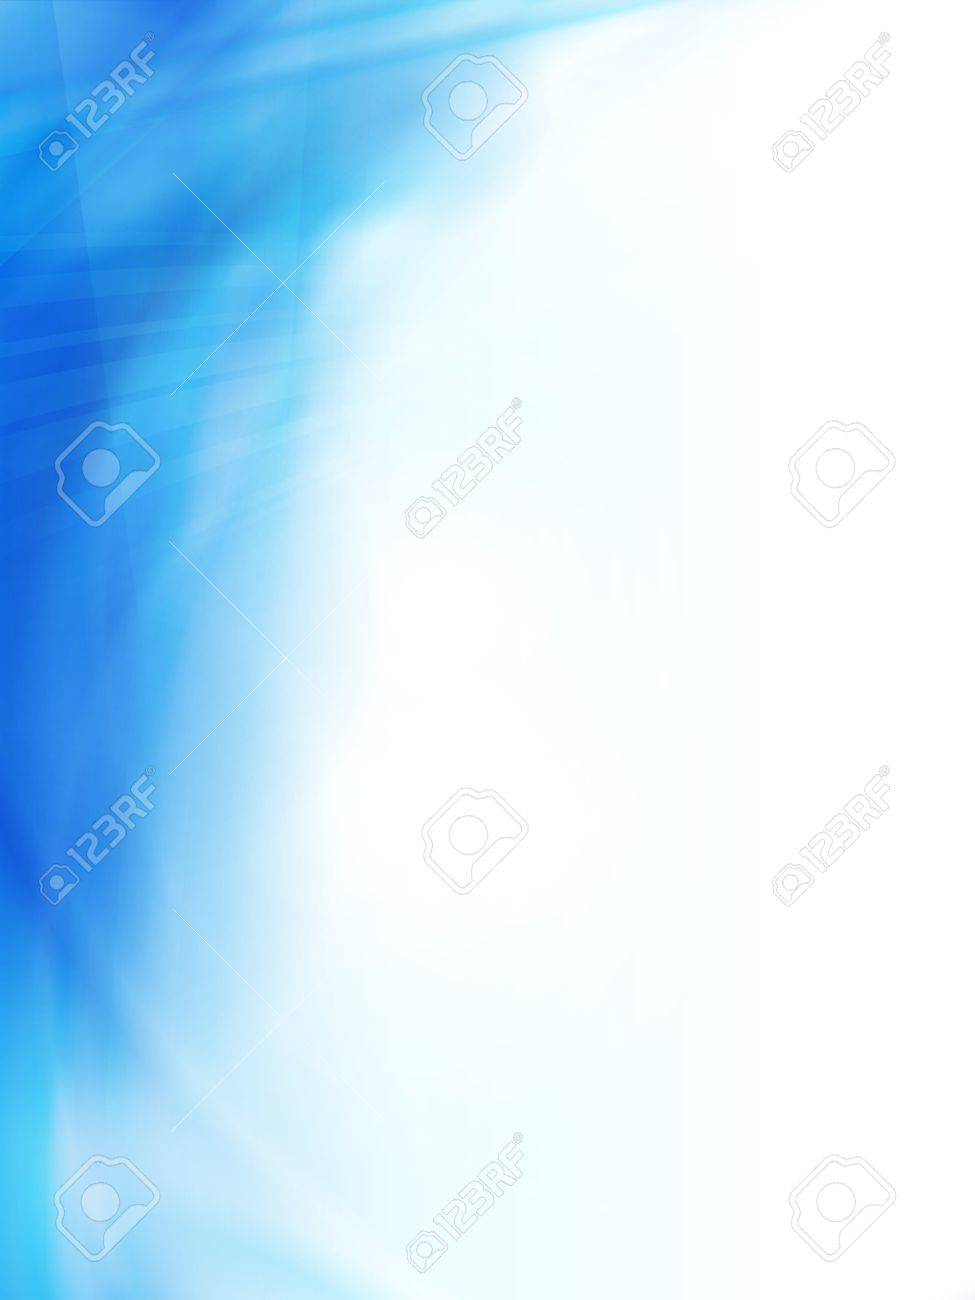 Smooth And Blurry Abstract Background Texture In Shades Of Light And Dark  Blue. Space For